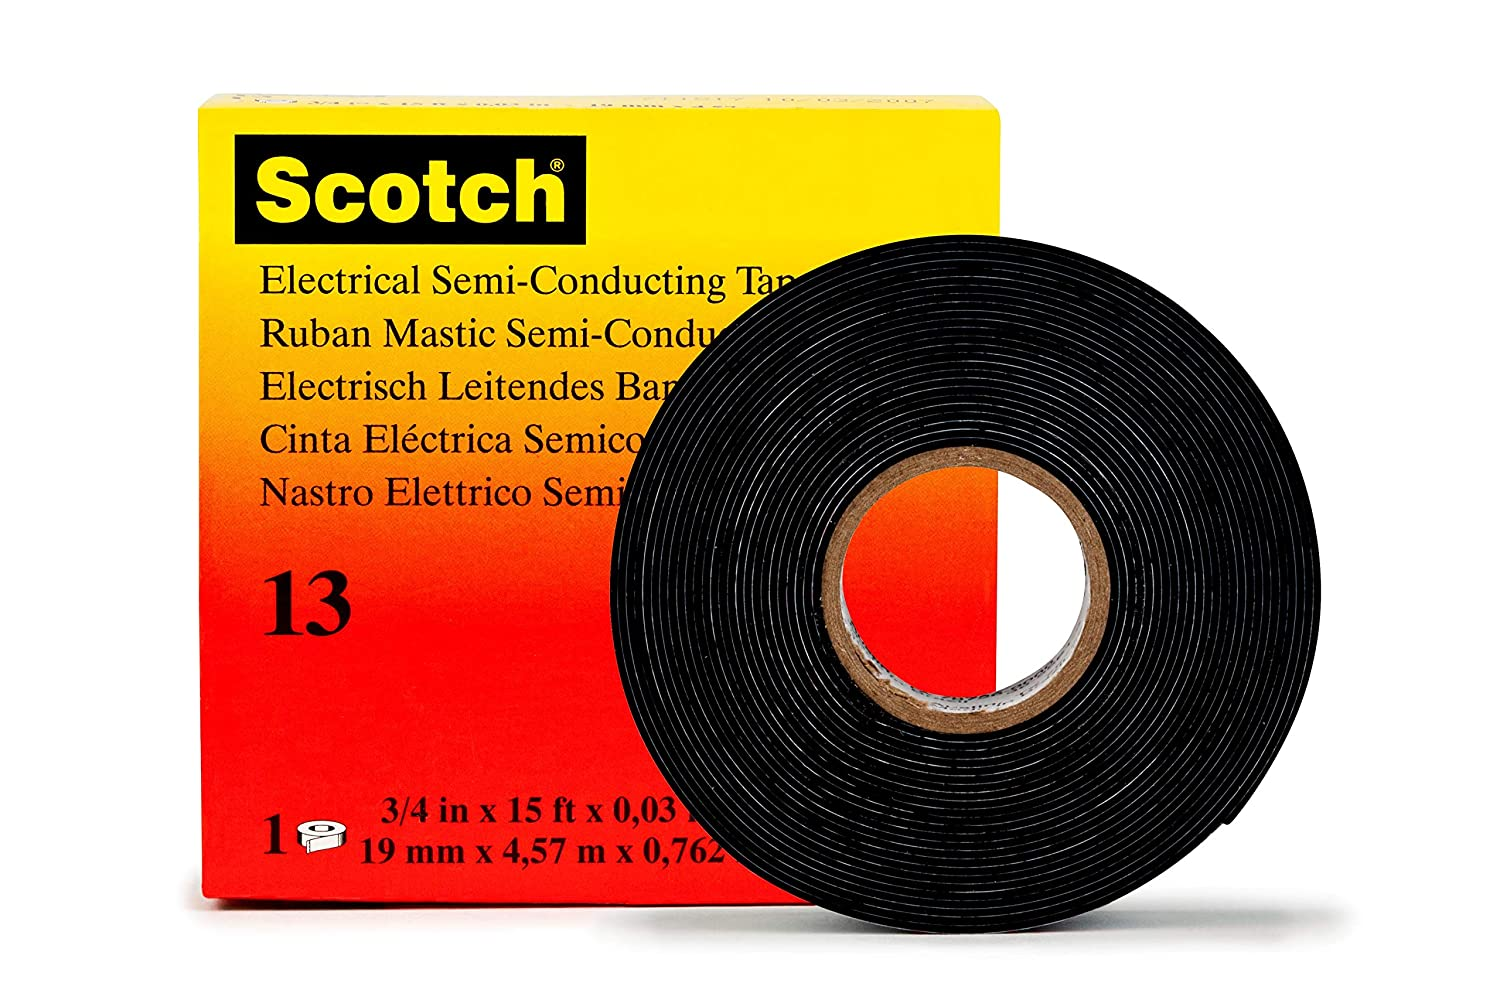 3M Scotch 13 Electrical Tapes